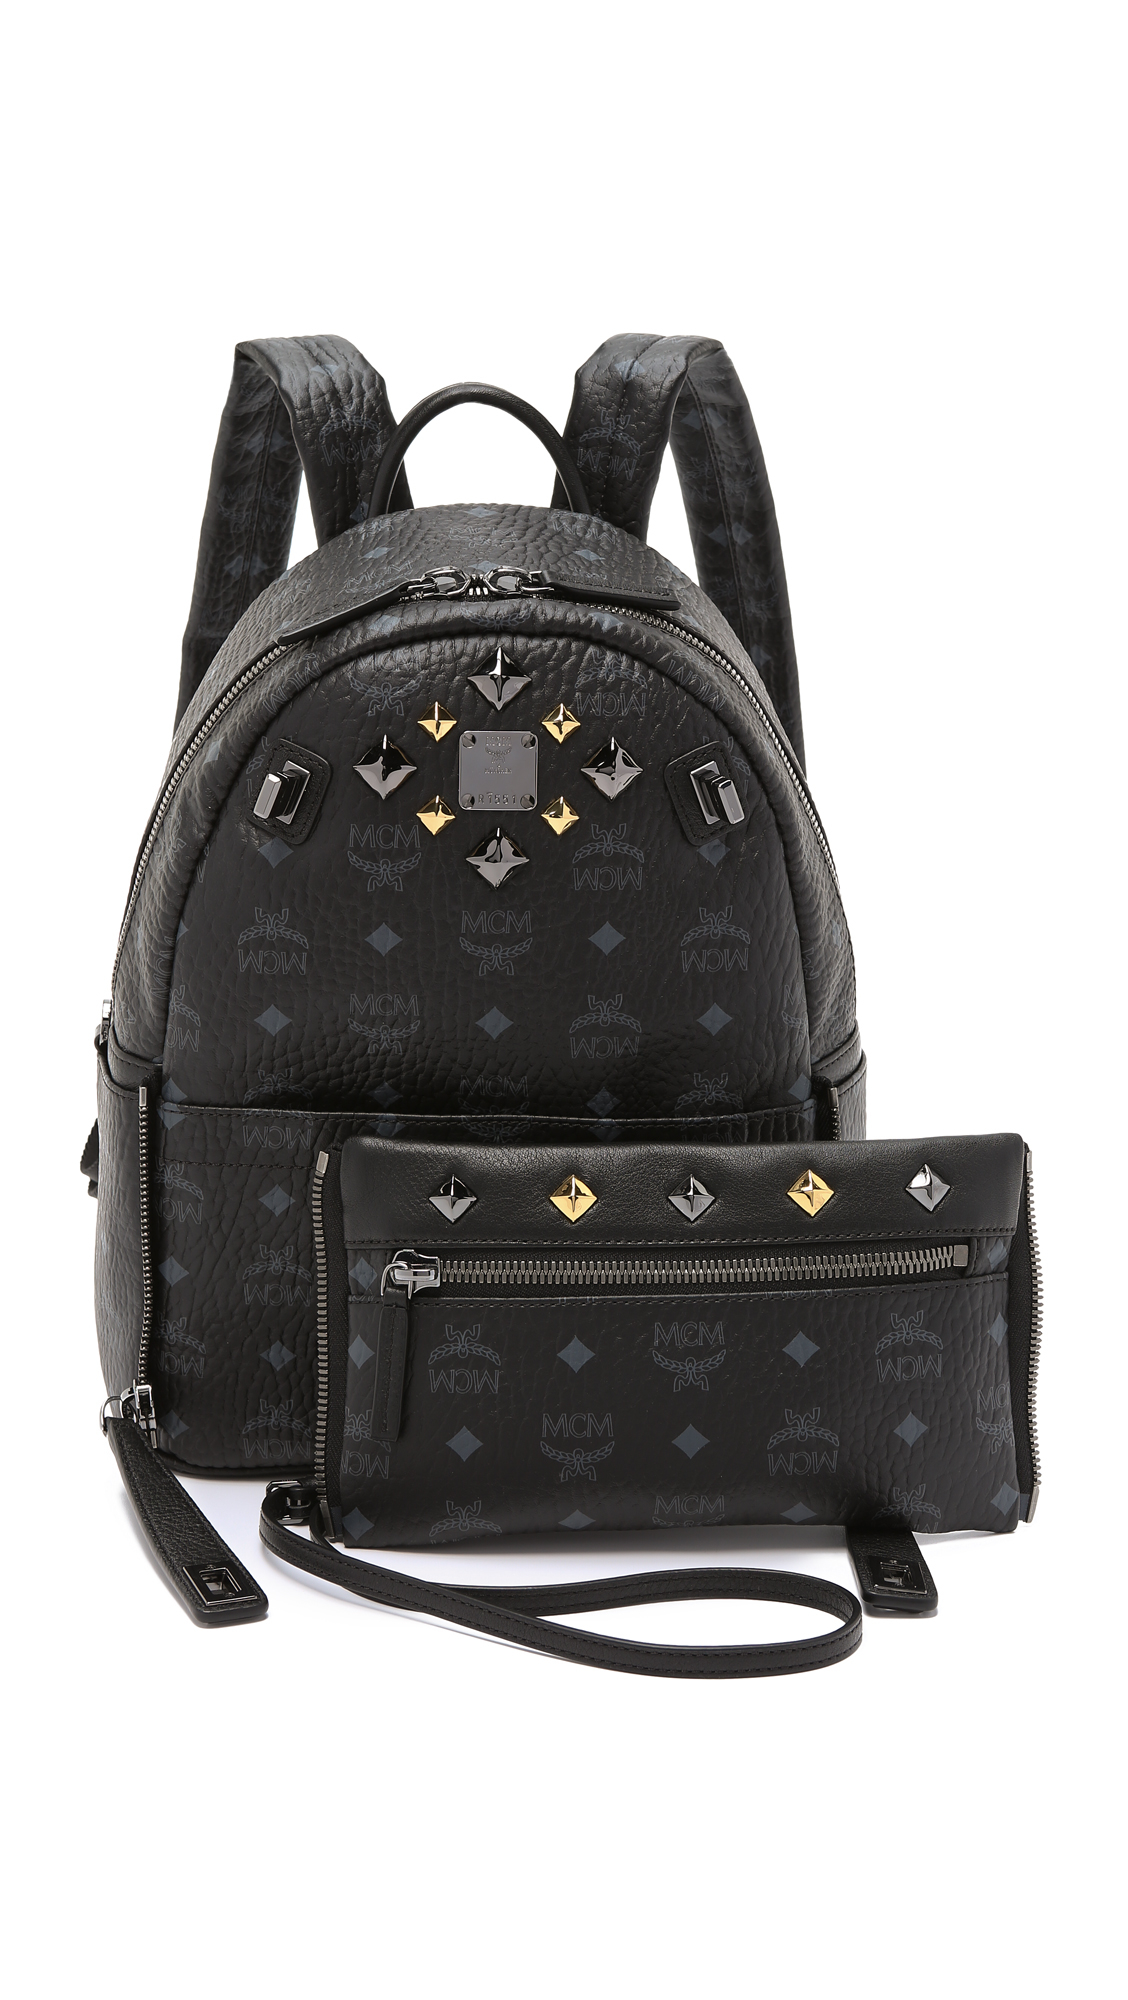 0d7b5605667b Lyst - MCM Convertible Dual Small Stark Backpack - Black in Black